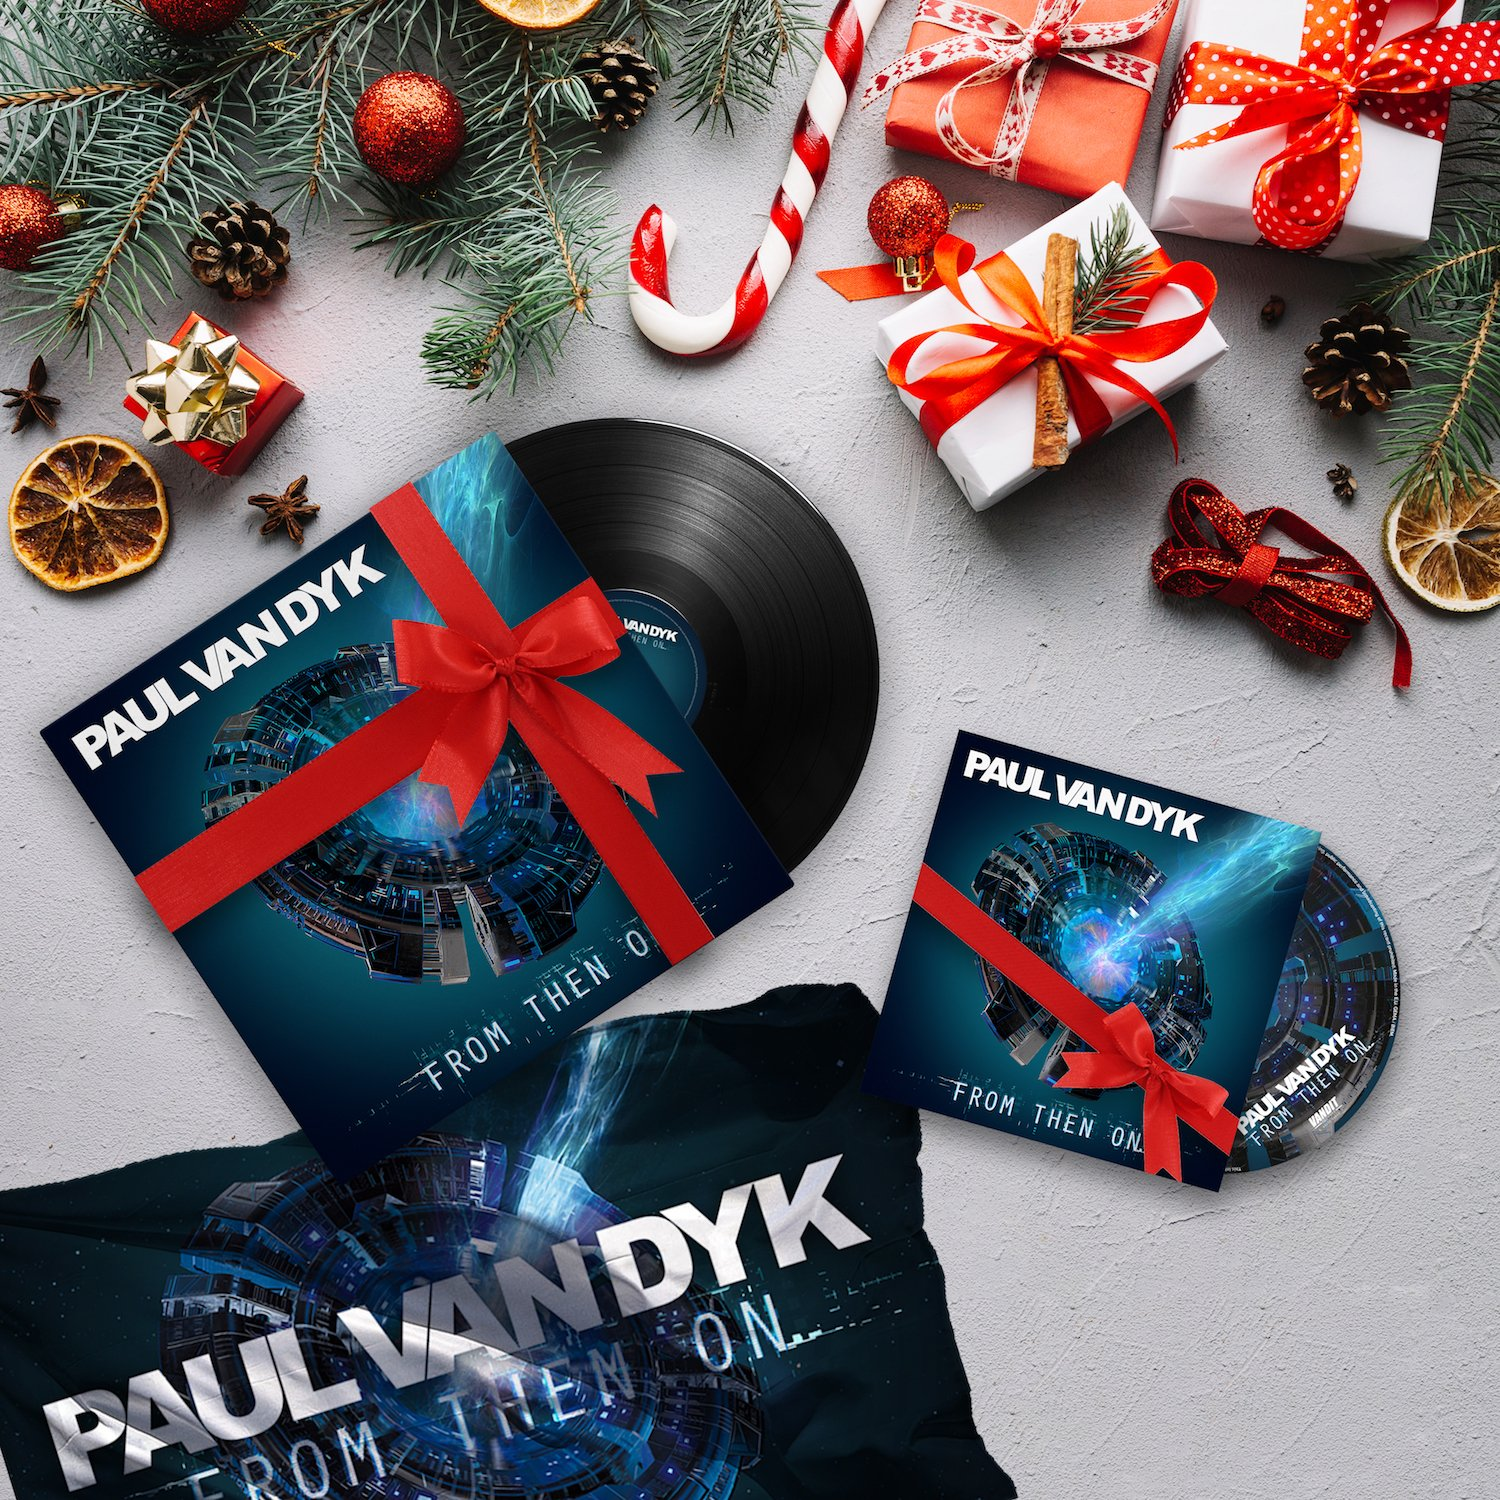 �� LAST CHANCE to order your #FromThenOn Deluxe package before Christmas �� �� �� https://t.co/PUnF7L5o4h https://t.co/fKwkia8U56